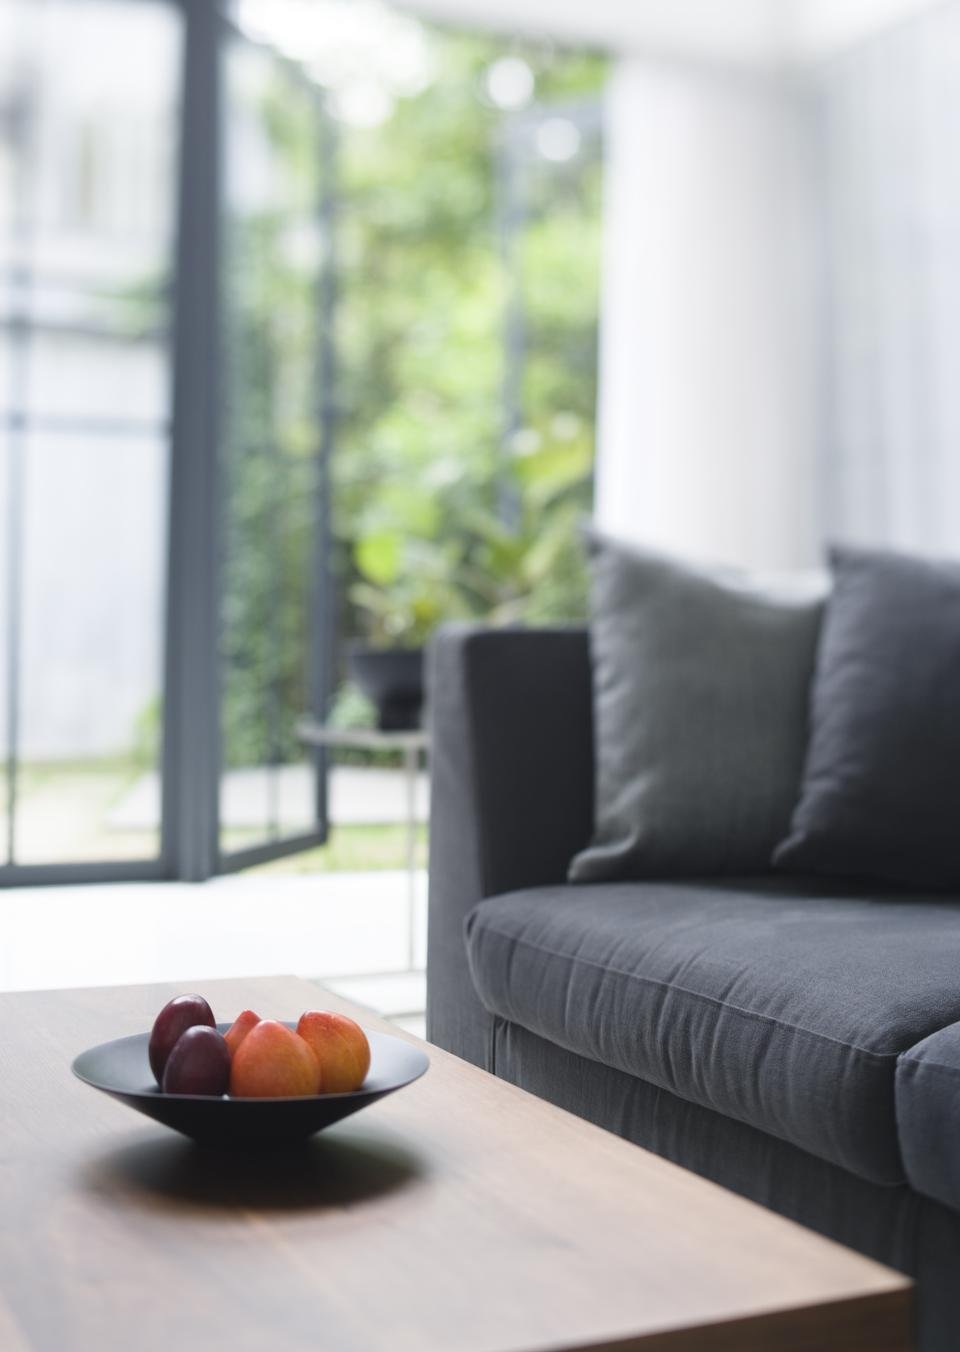 Fresh fruits on table in living room,close up